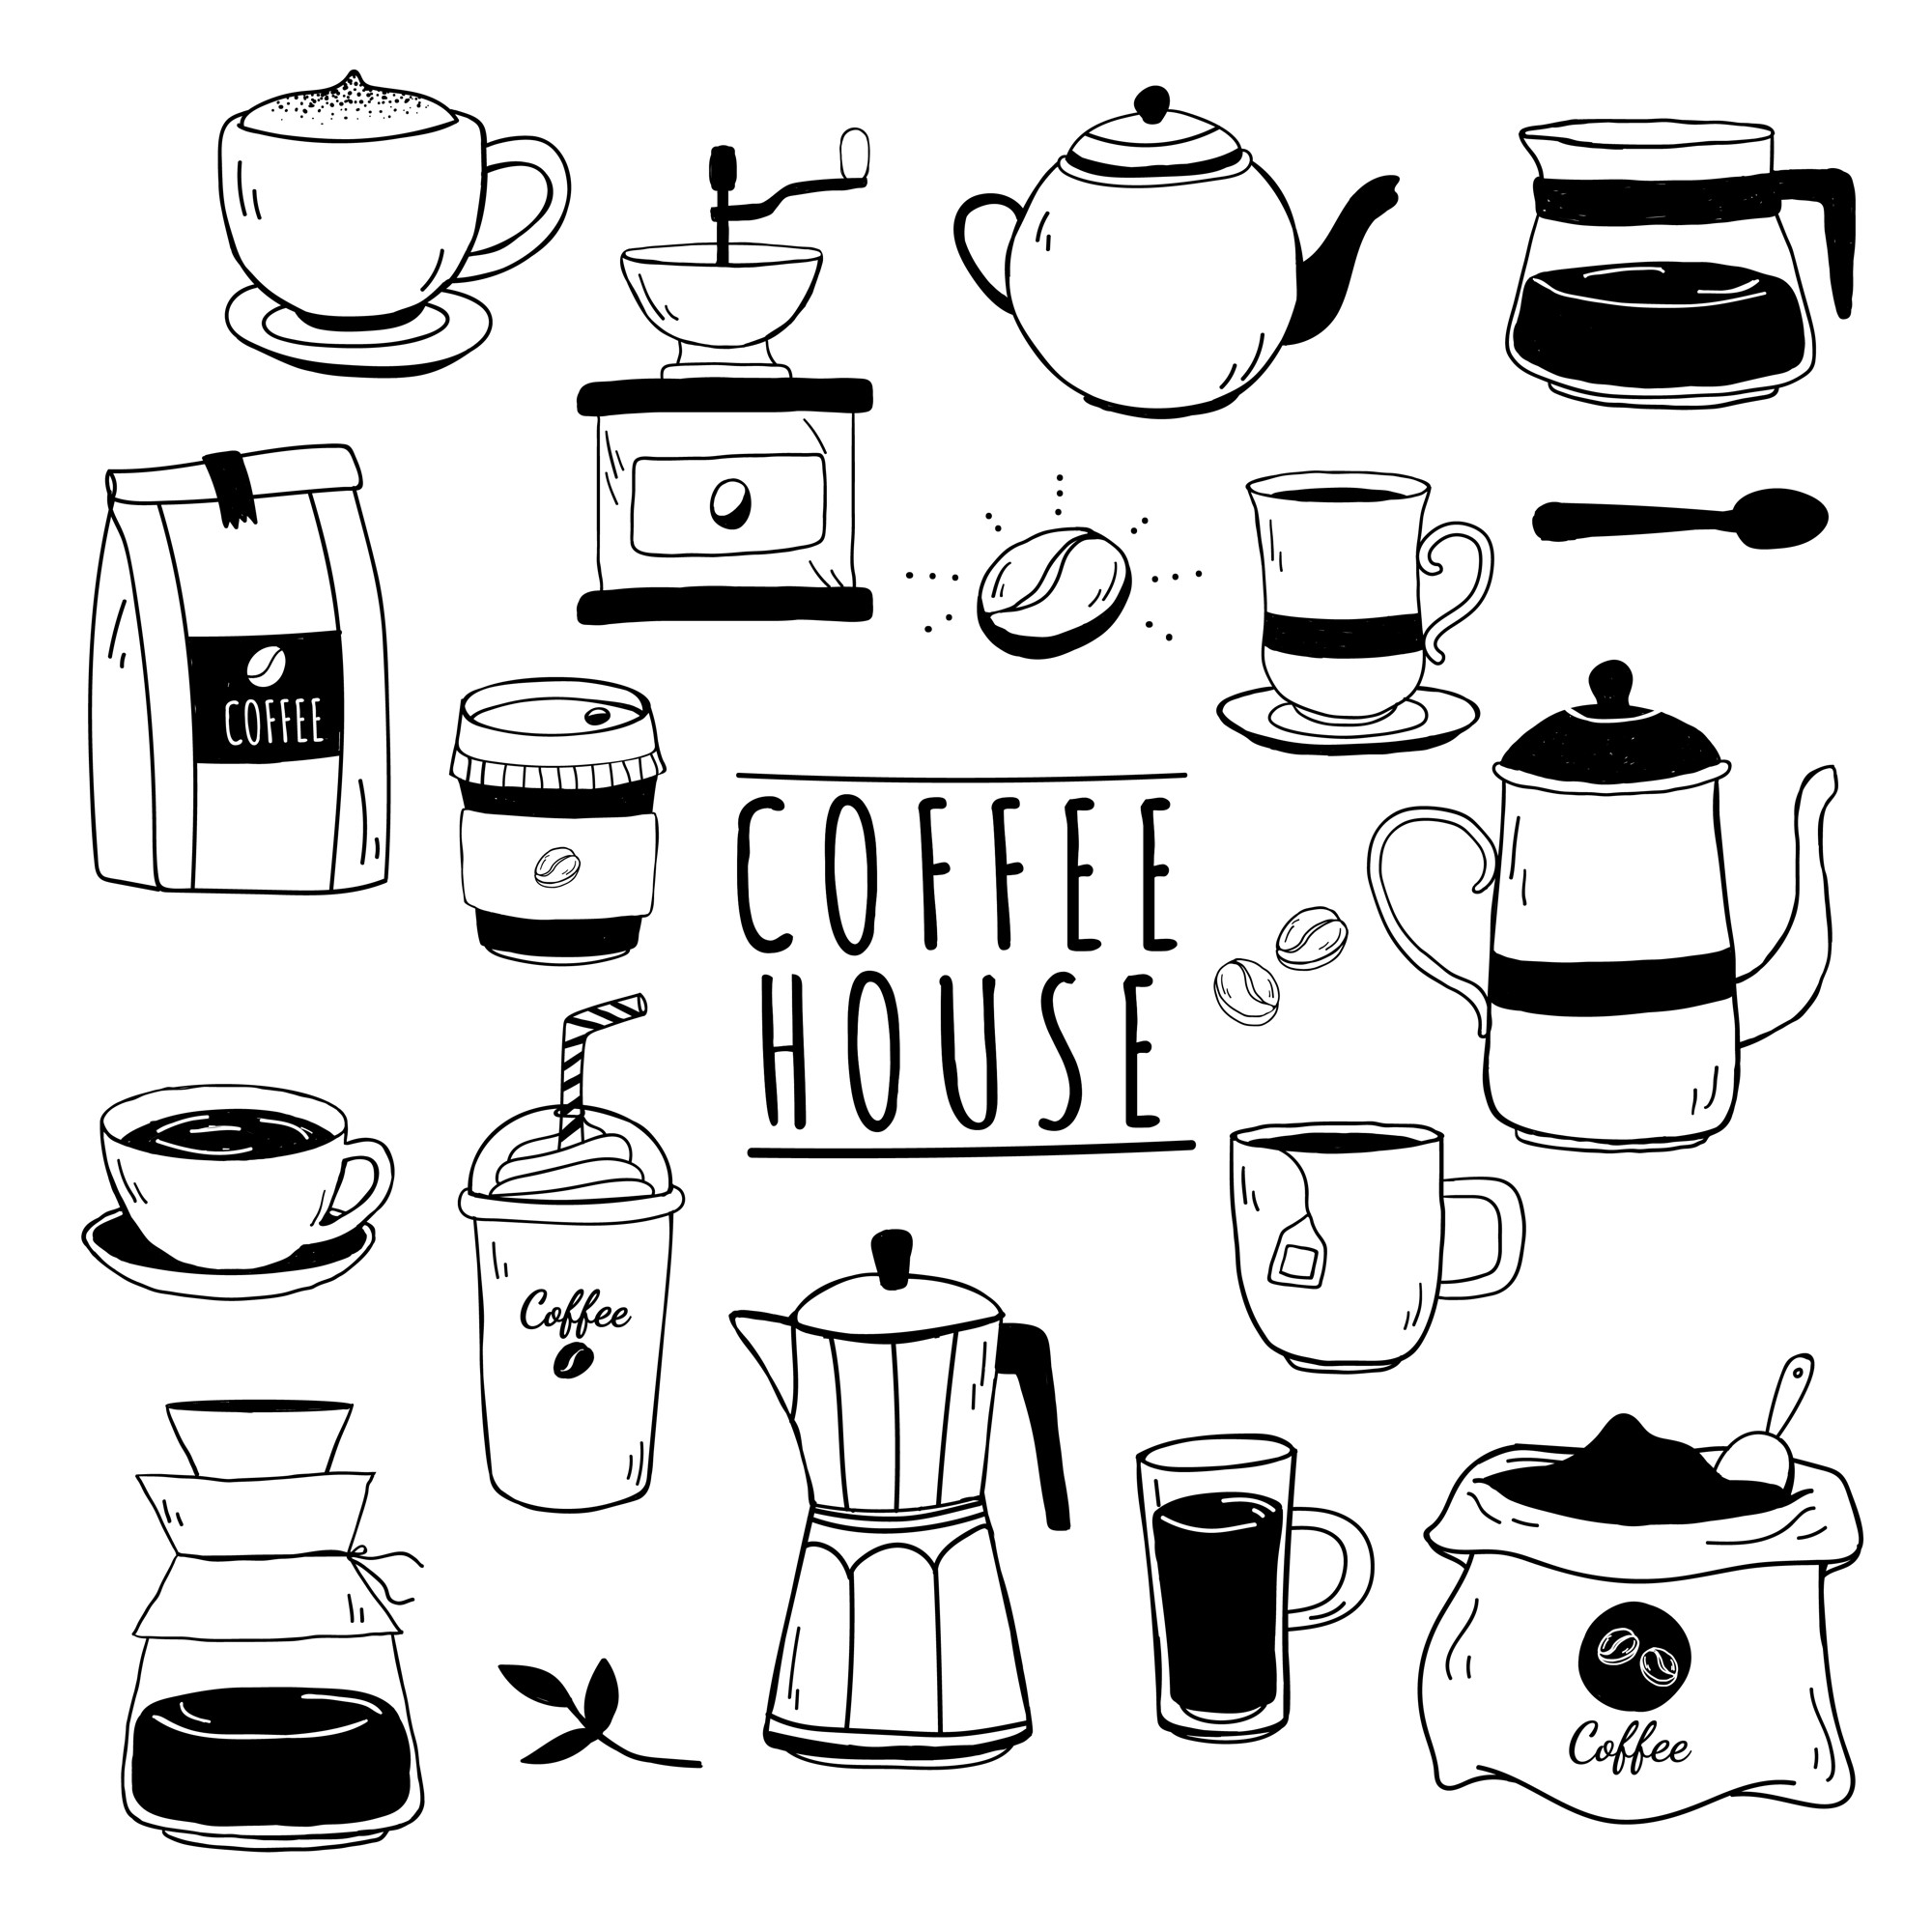 Cafe and coffee house pattern